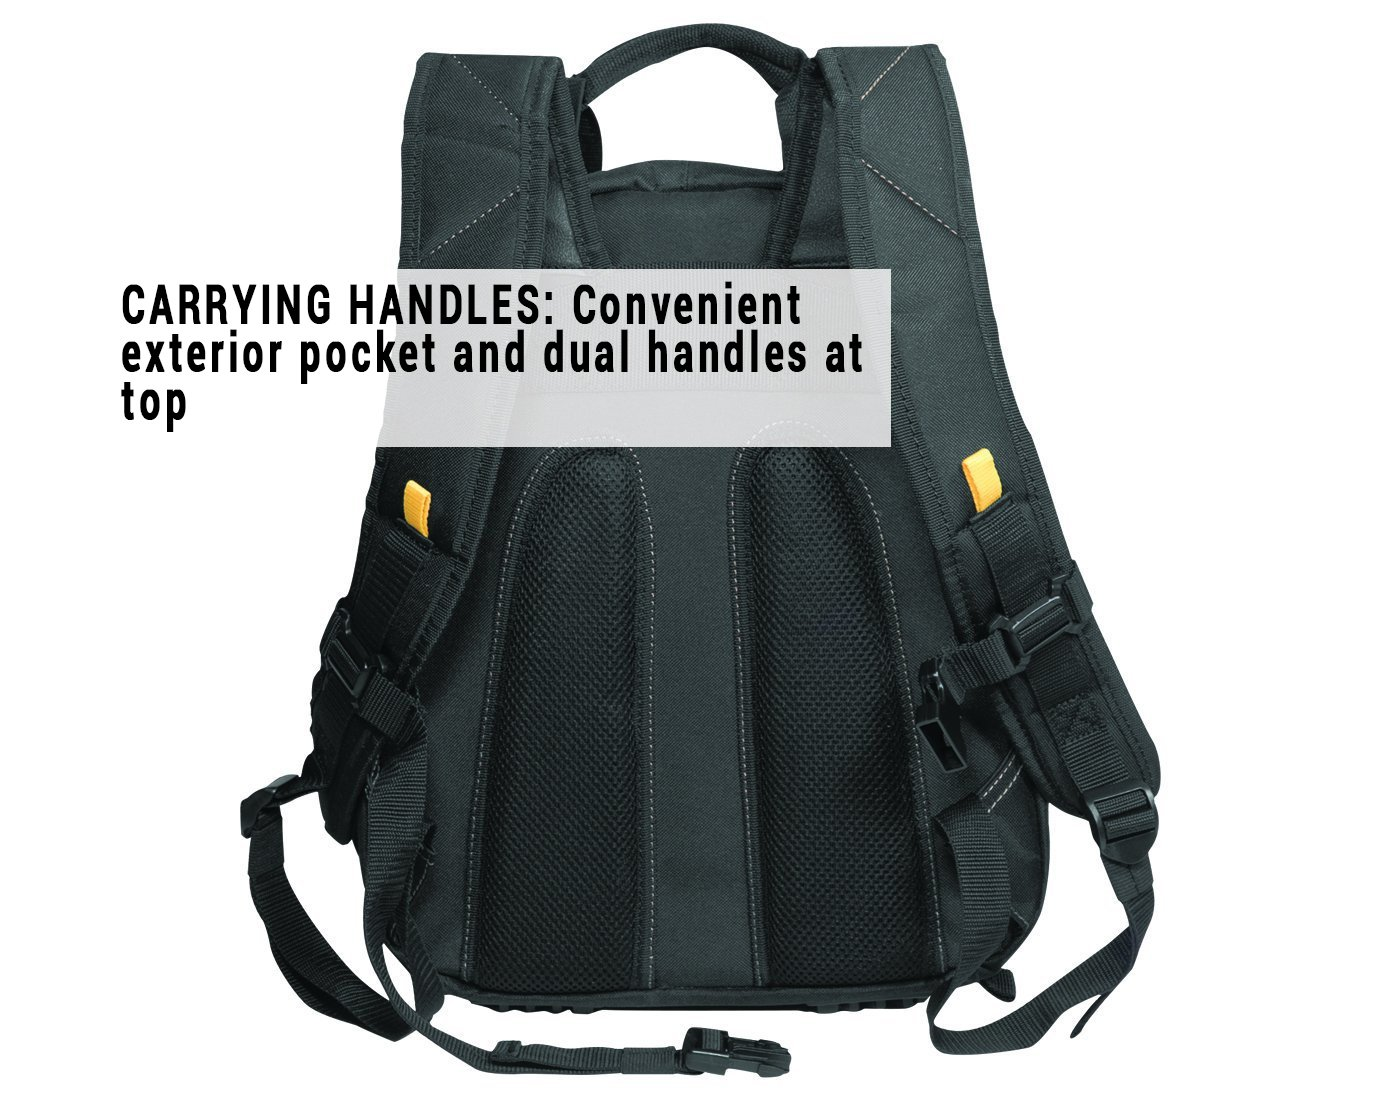 CLC 1134 Carpenter's Tool Backpack with 44 Pockets and Padded Back Support by Custom Leathercraft (Image #5)